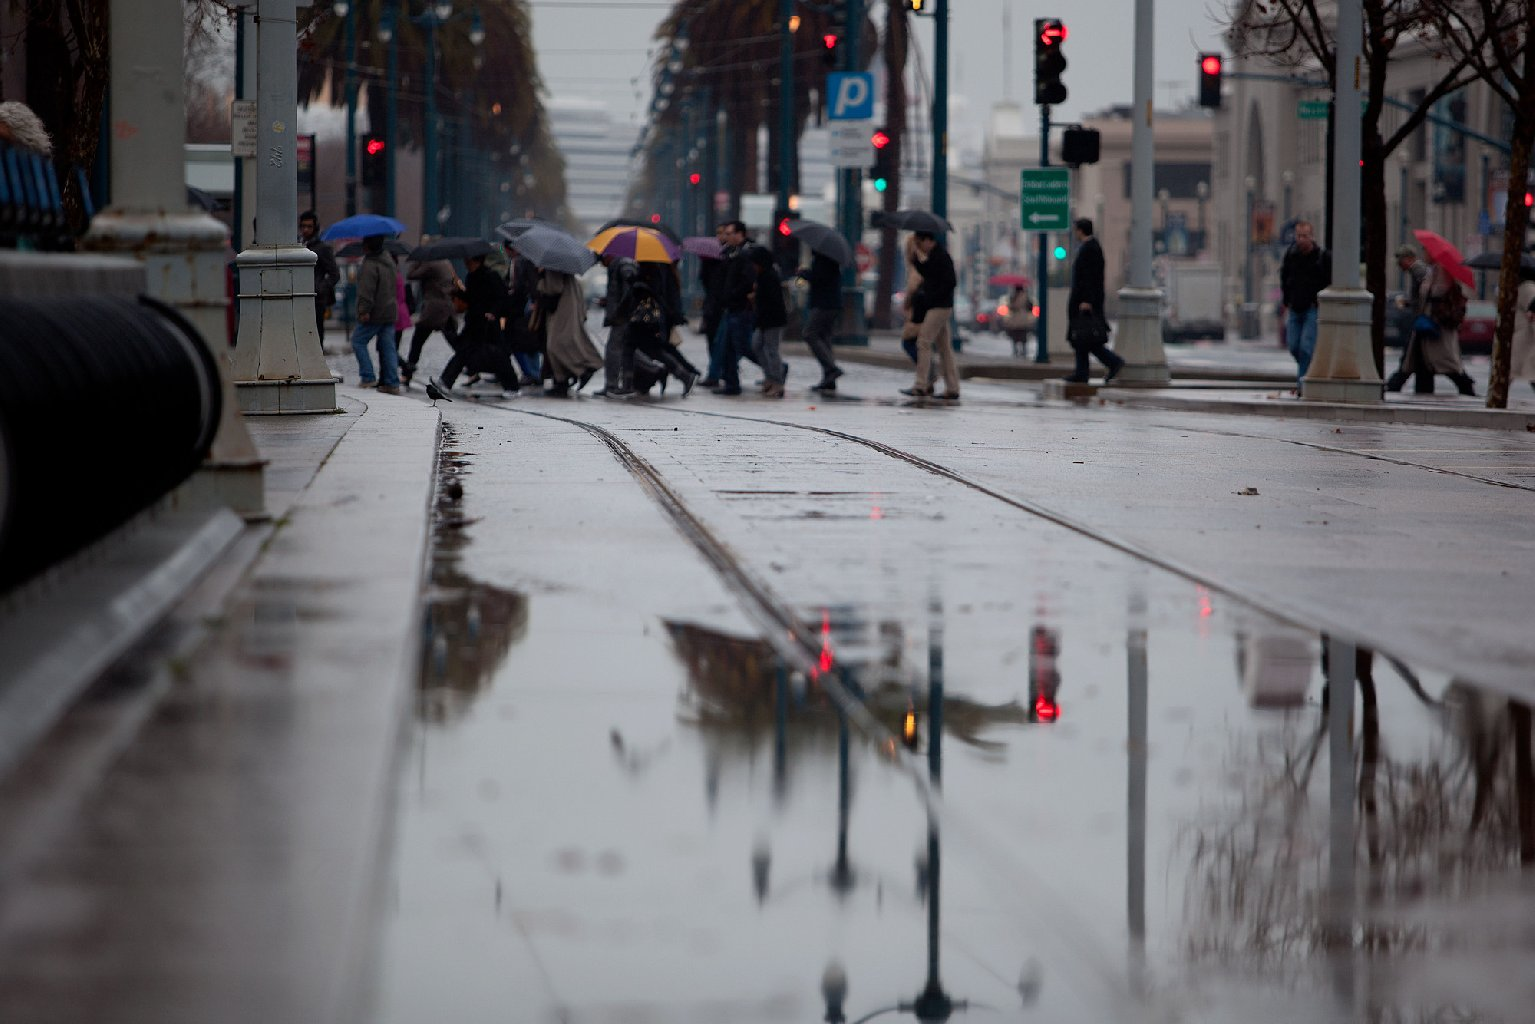 Rain falls on San Francisco's Embarcadero in early February. (Mark Andrew Boyer/KQED)